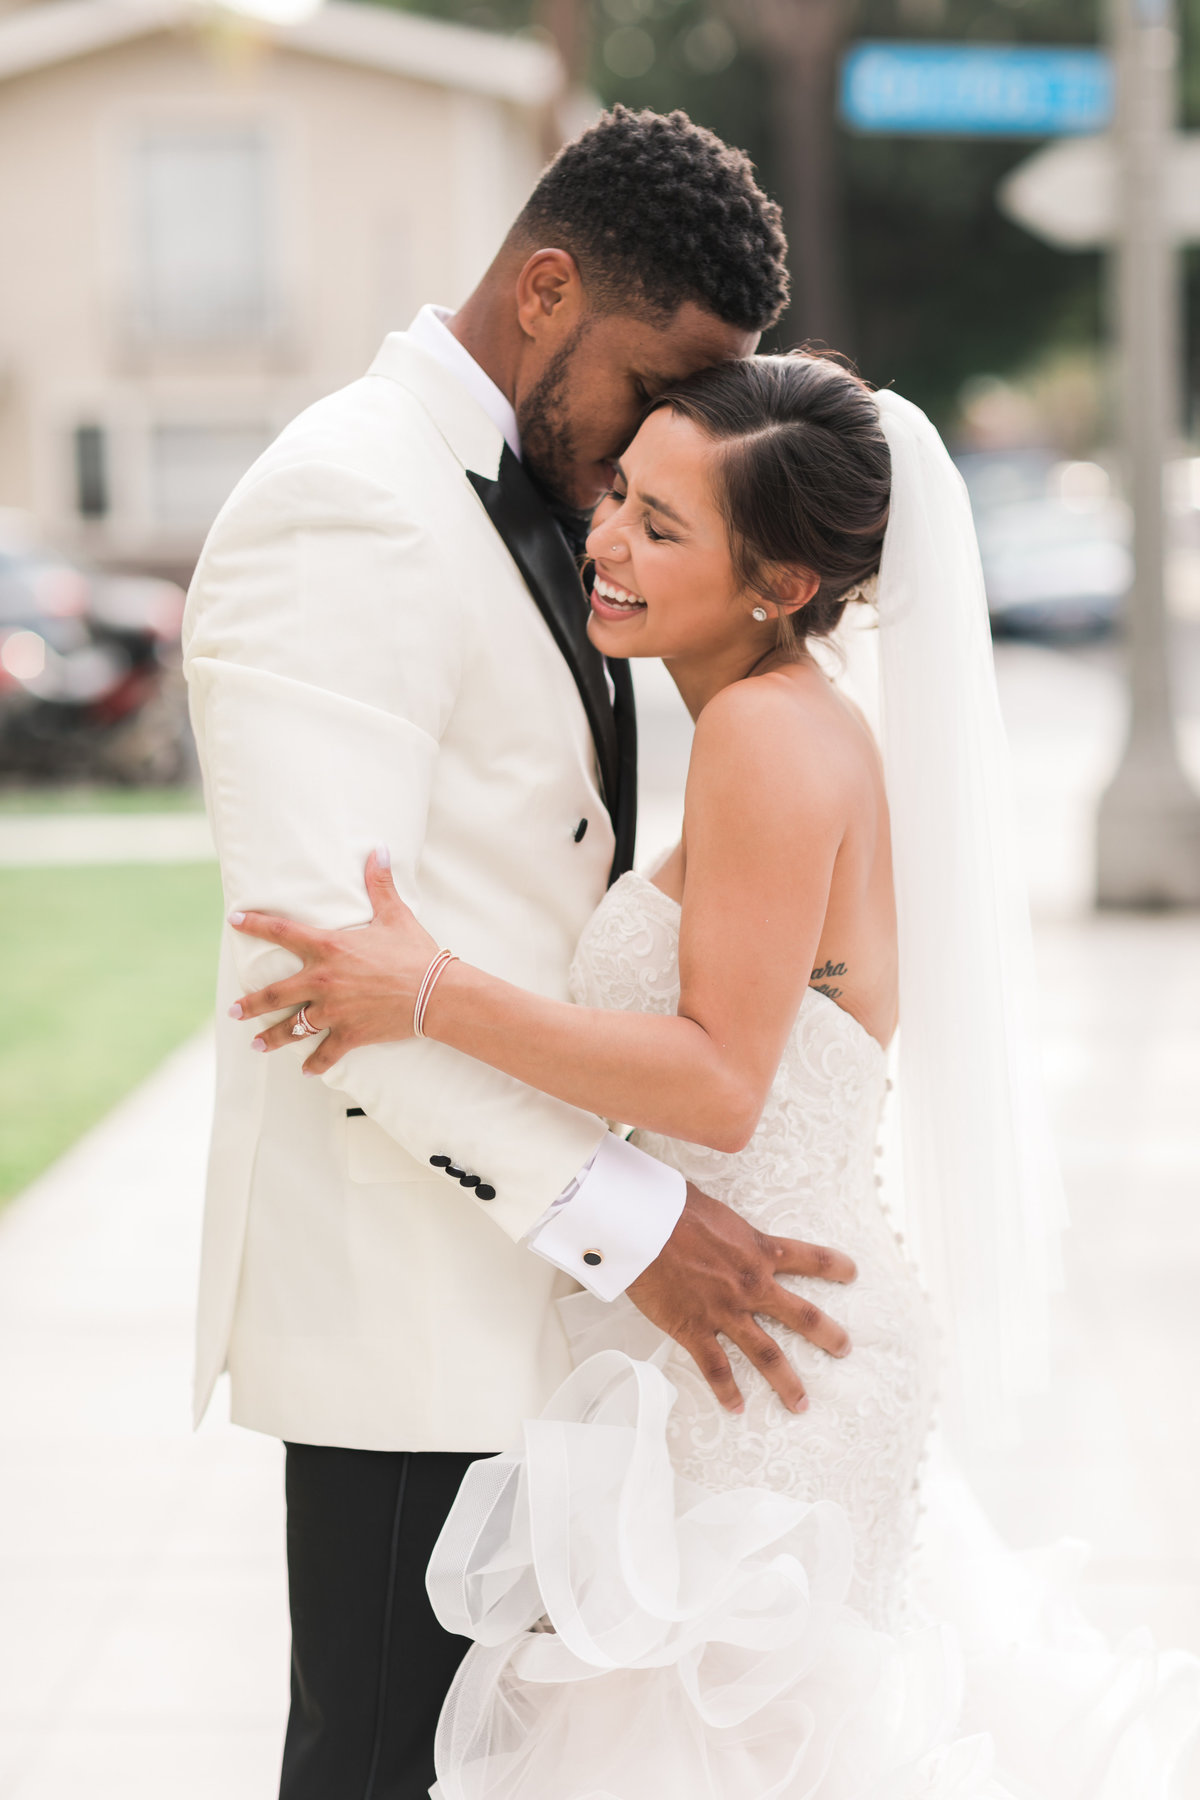 Ebell_Los_Angeles_Malcolm_Smith_NFL_Navy_Brass_Wedding_Valorie_Darling_Photography - 103 of 122